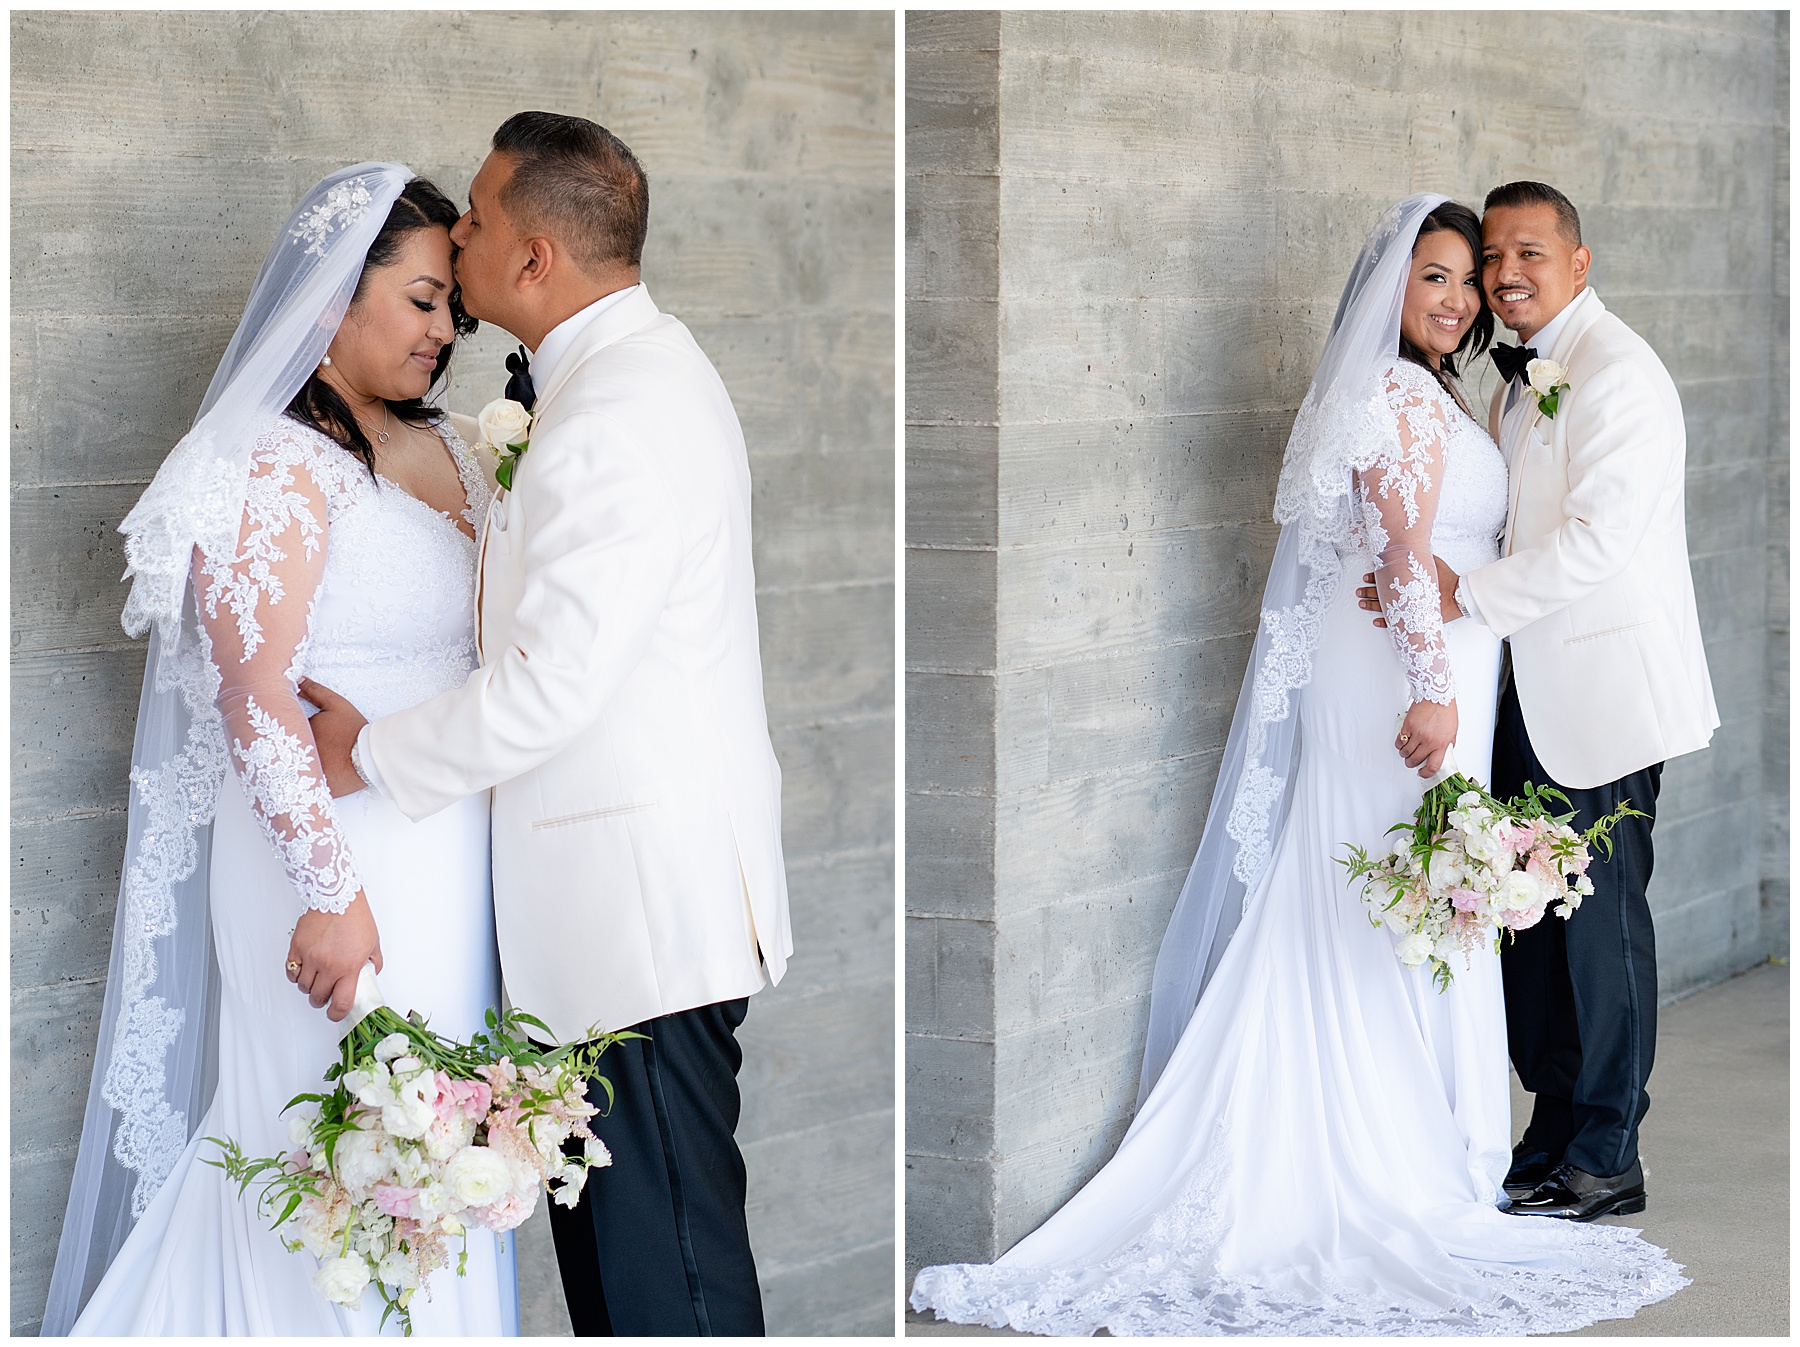 bride and groom against a concrete wall